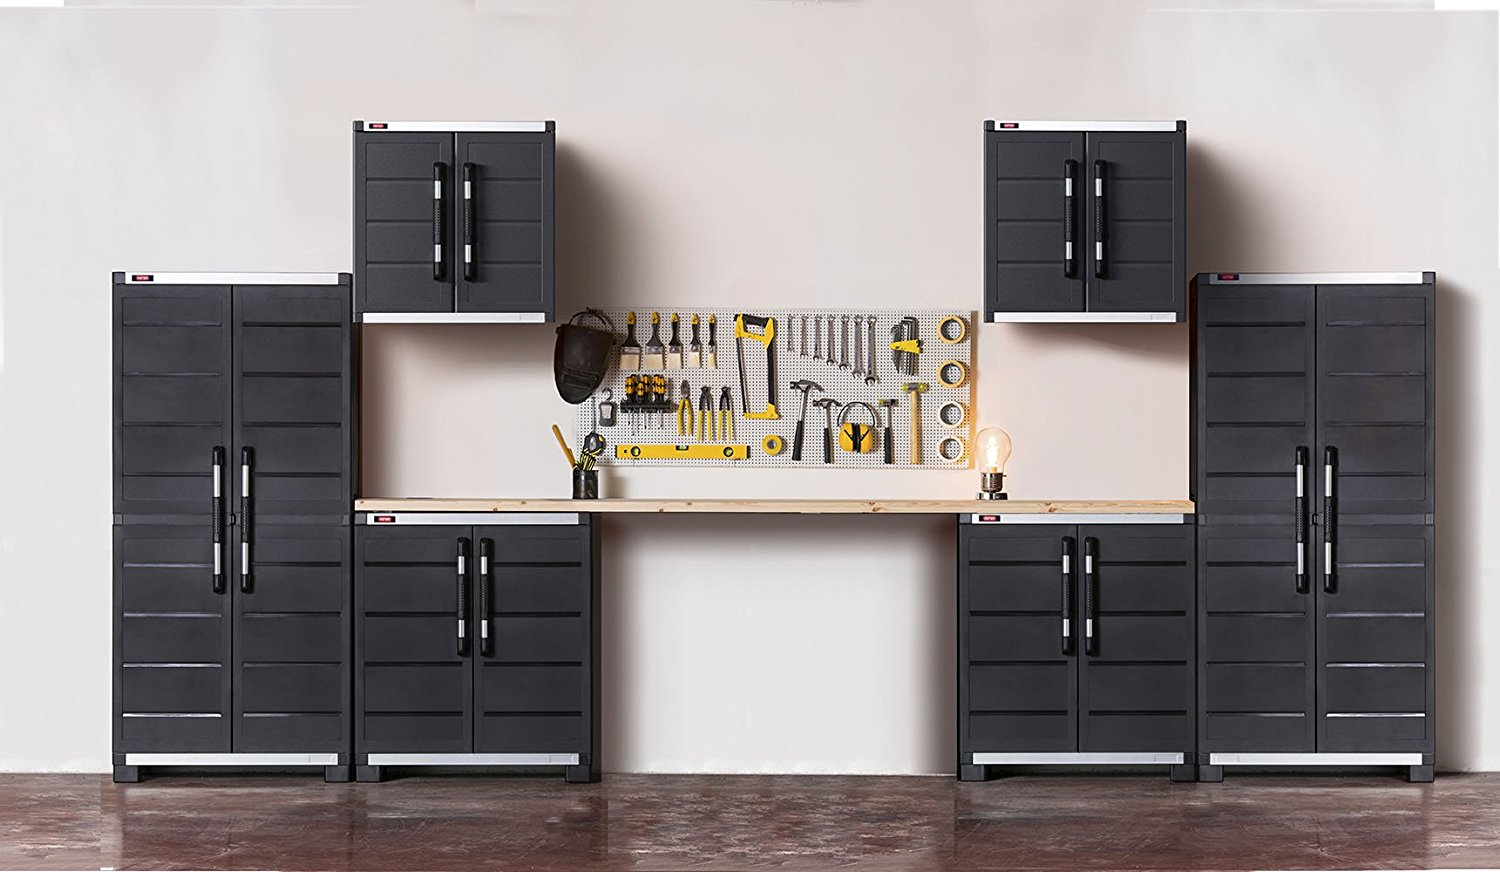 Keter Ready To Assemble XL Pro Garage System Utility Tool Storage Cabinets (Set of 6), Black